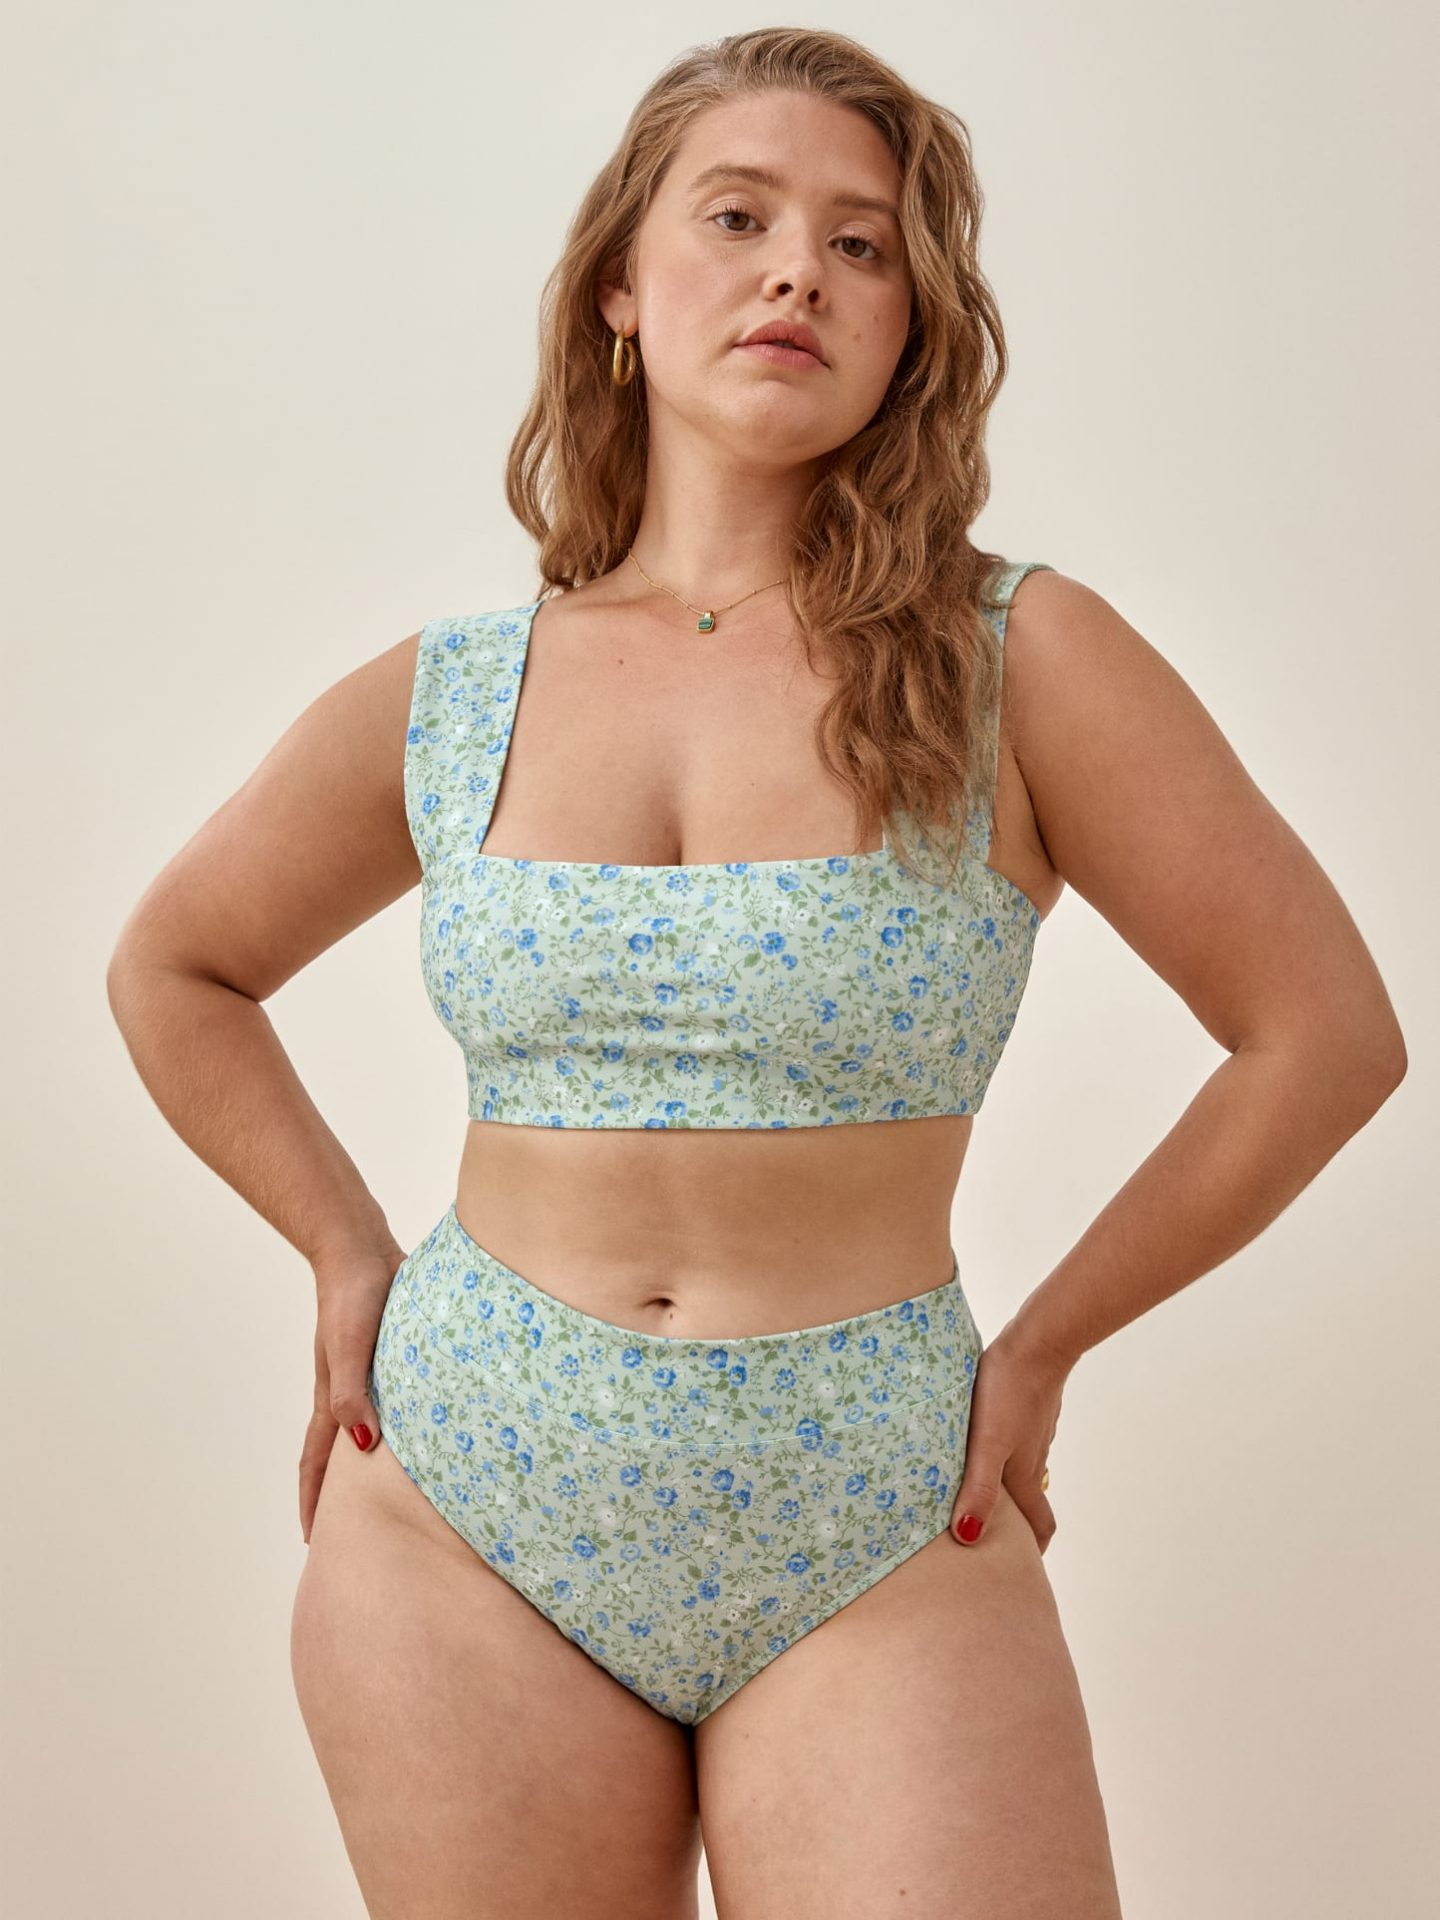 Square neck floral bikini top from Reformation for broad shoulders